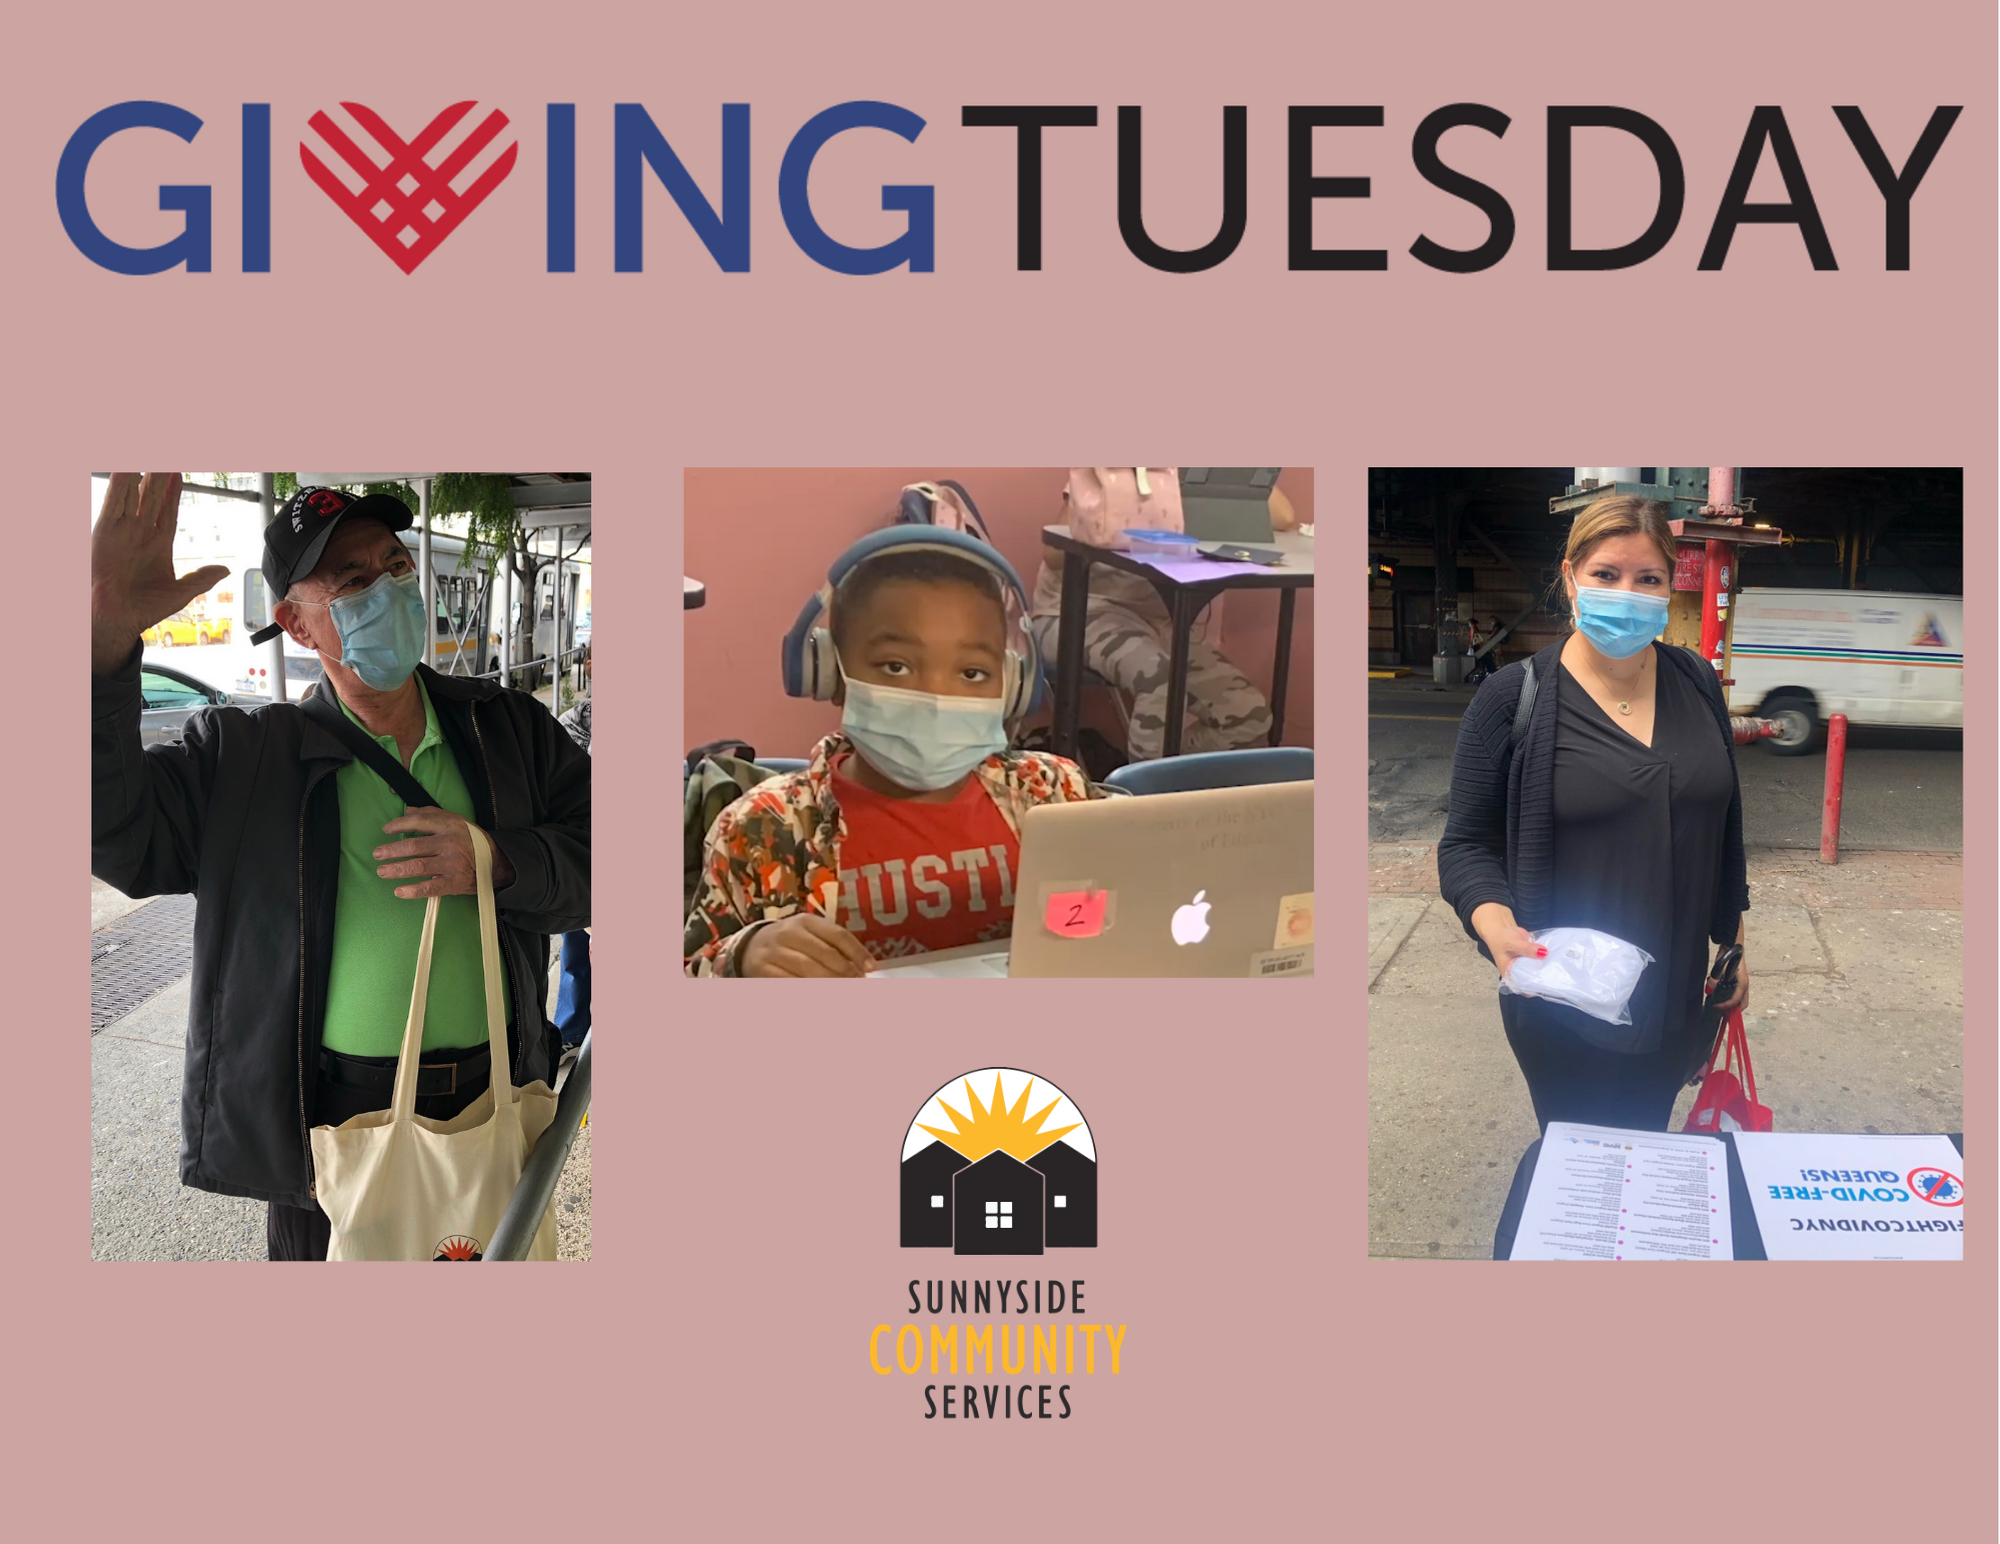 On Giving Tuesday, help Sunnyside Community Services continue to light up lives with programs as diverse as the people we serve.